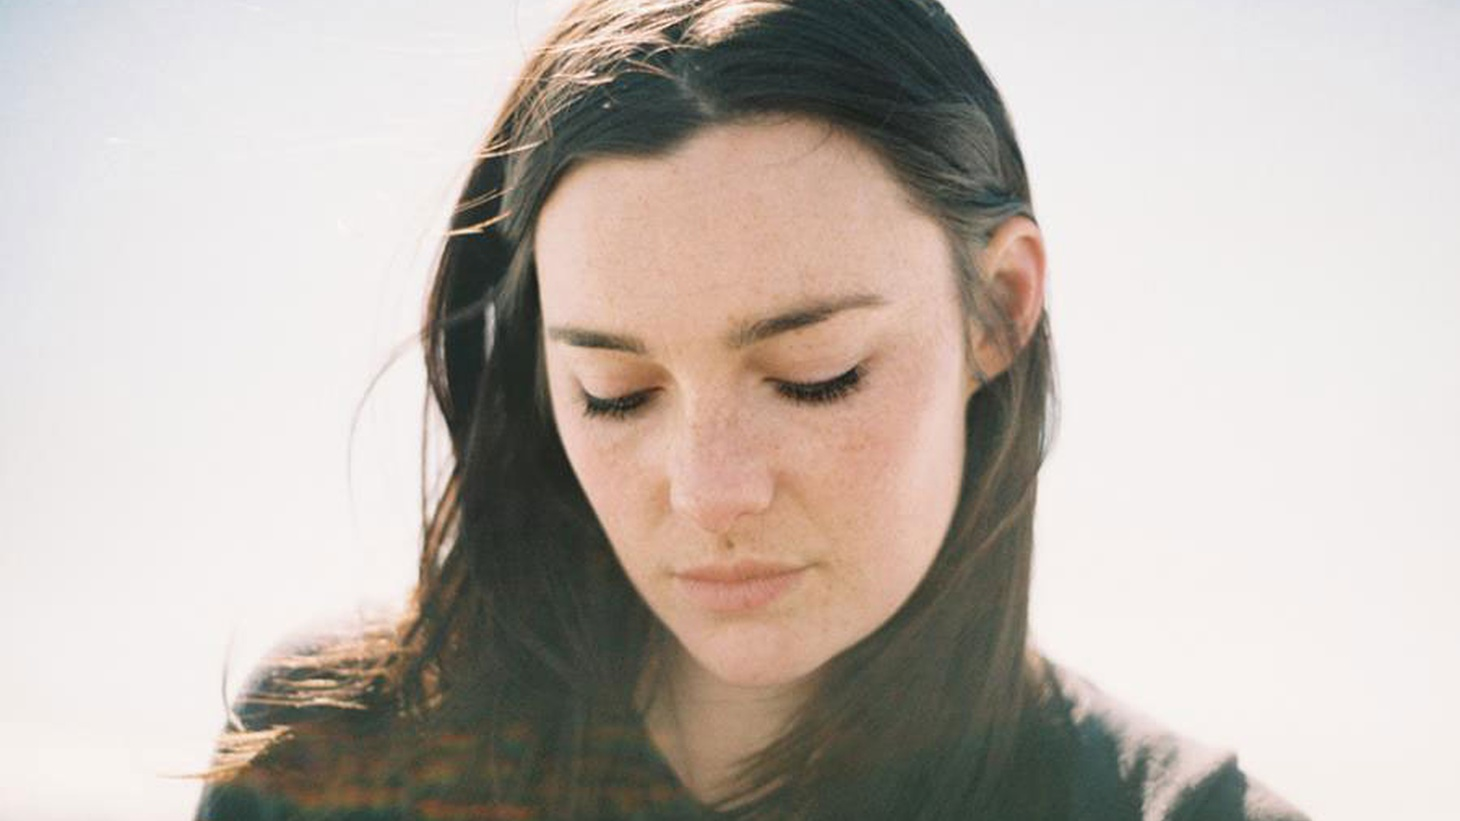 Aussie singer-songwriter Lisa Mitchell channels a Joni Mitchell folk vibe and has an album slated for release next year.